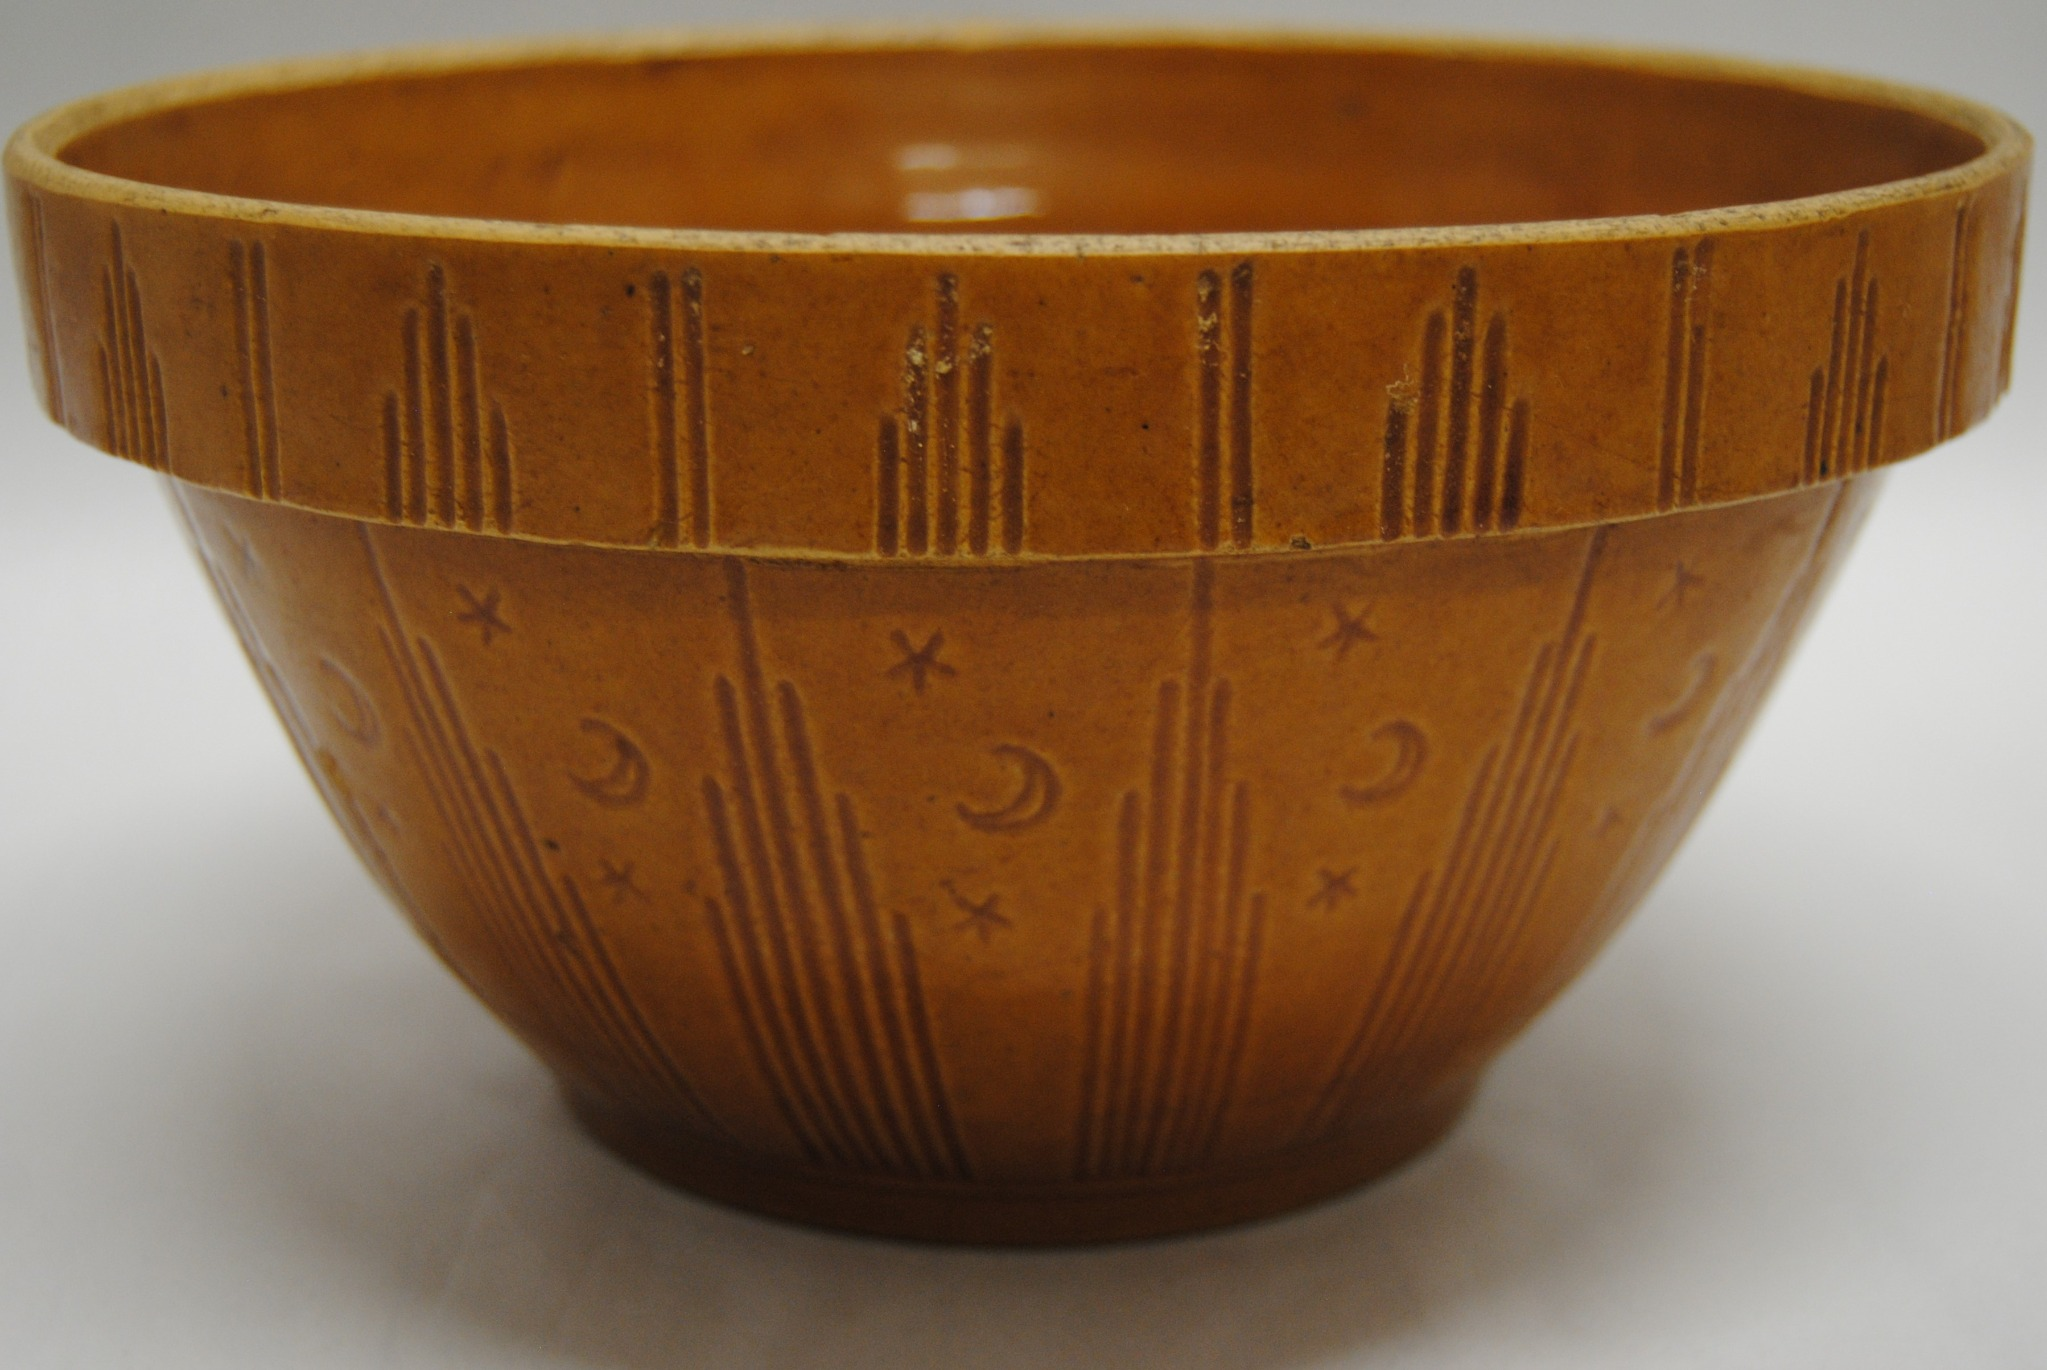 Watts Moon and Stars Antique Stoneware Mixing Bowl (T)